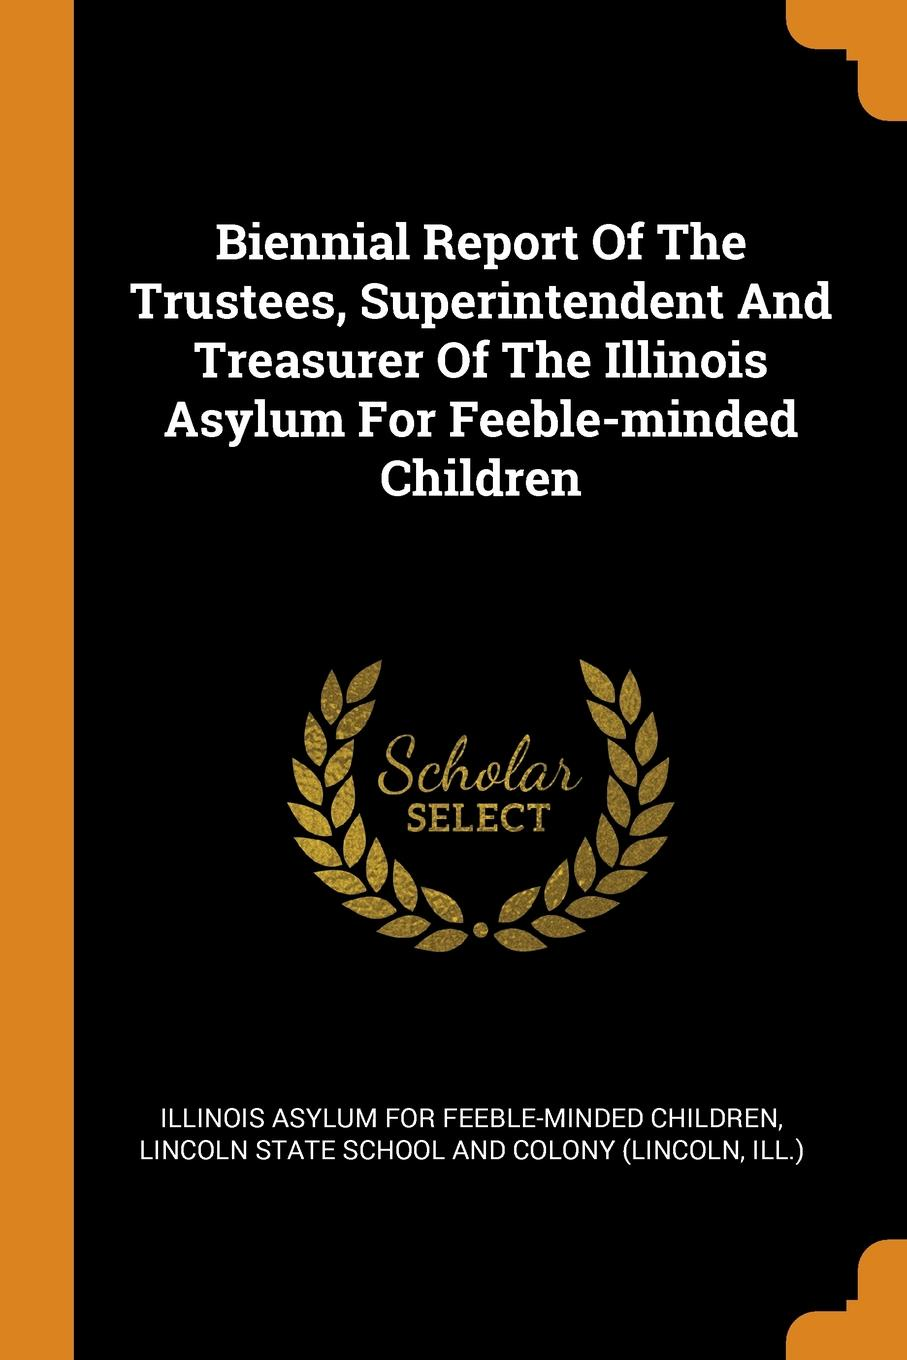 Biennial Report Of The Trustees, Superintendent And Treasurer Of The Illinois Asylum For Feeble-minded Children